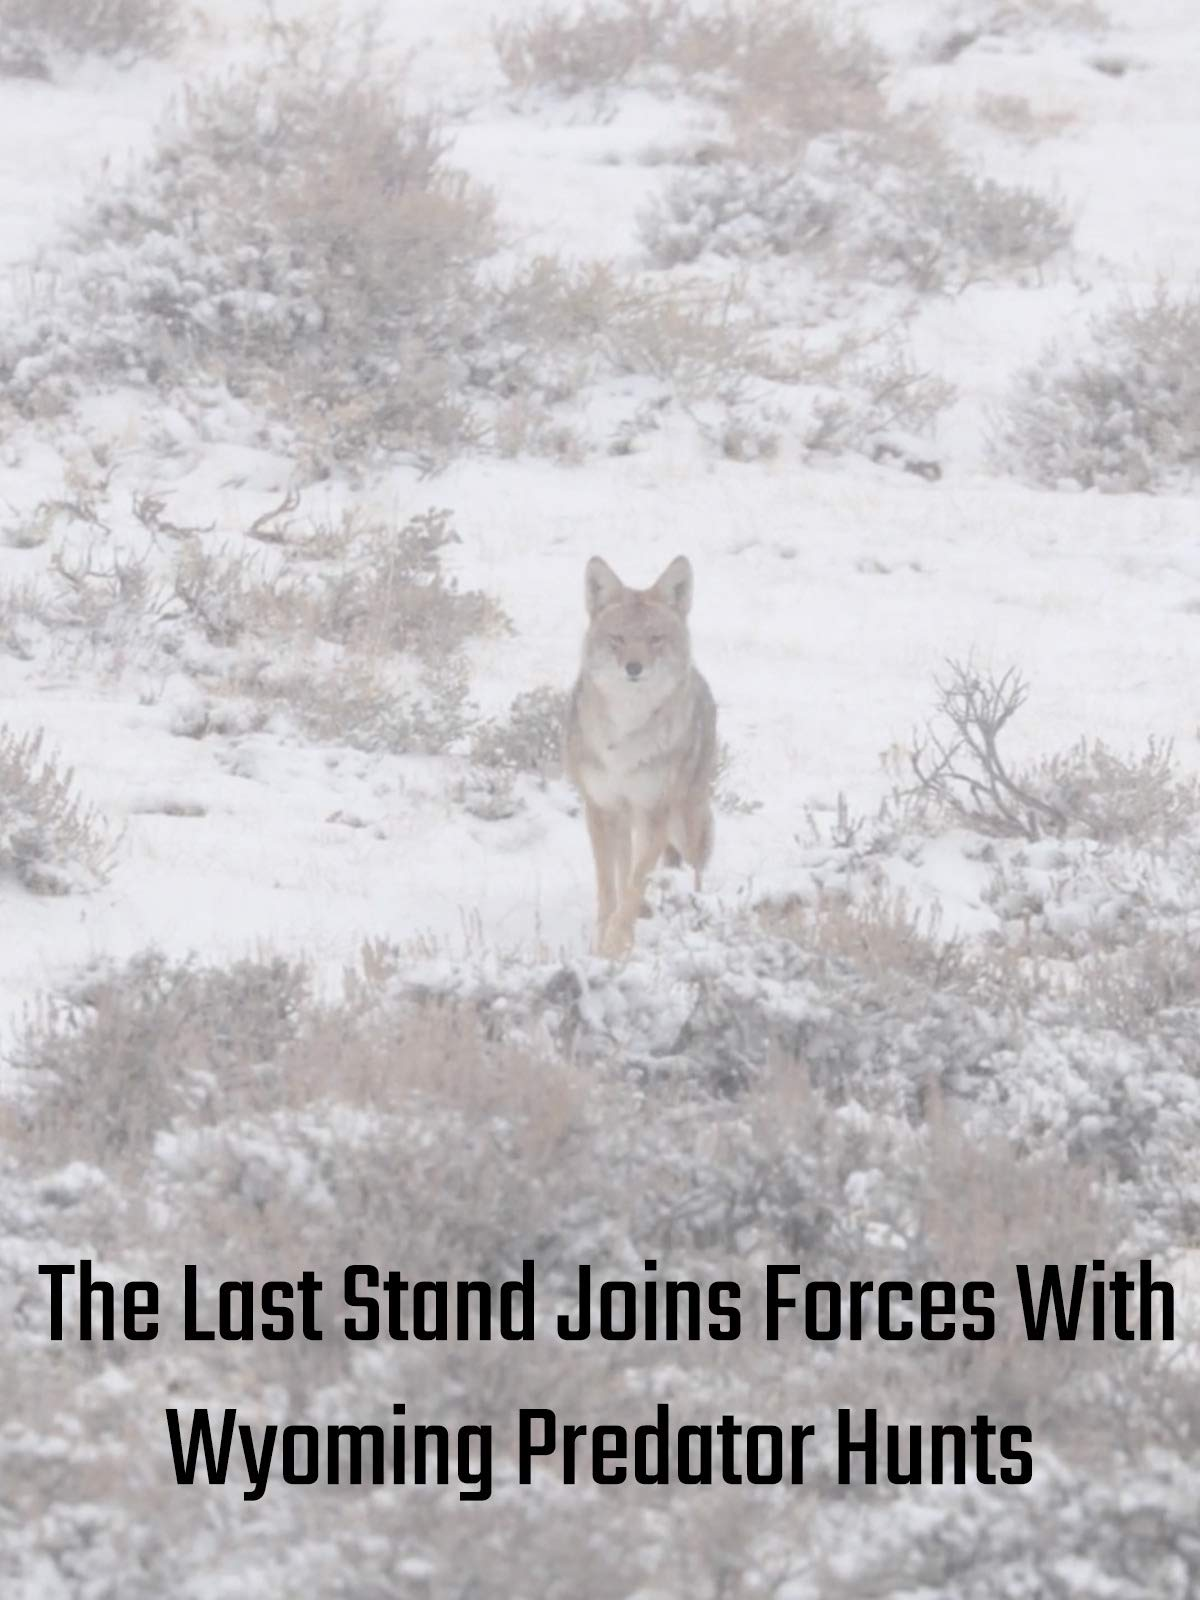 The Last Stand Joins Forces With Wyoming Predator Hunts